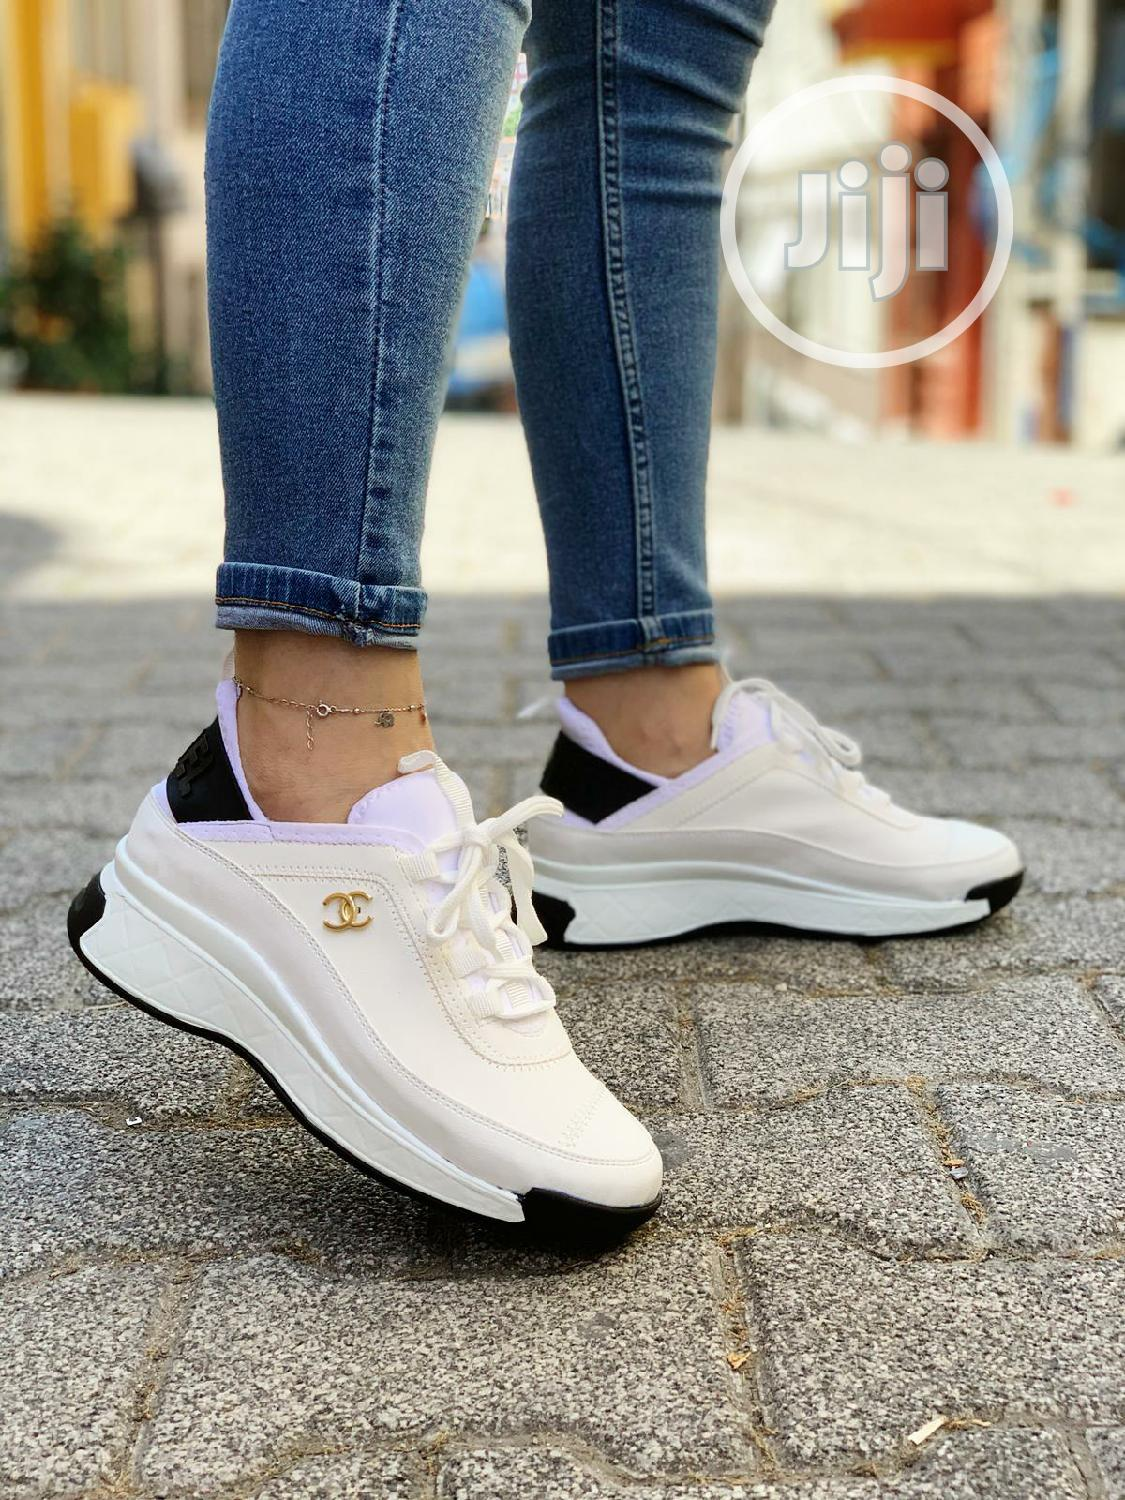 New Quality Chanel Female Sneakers in